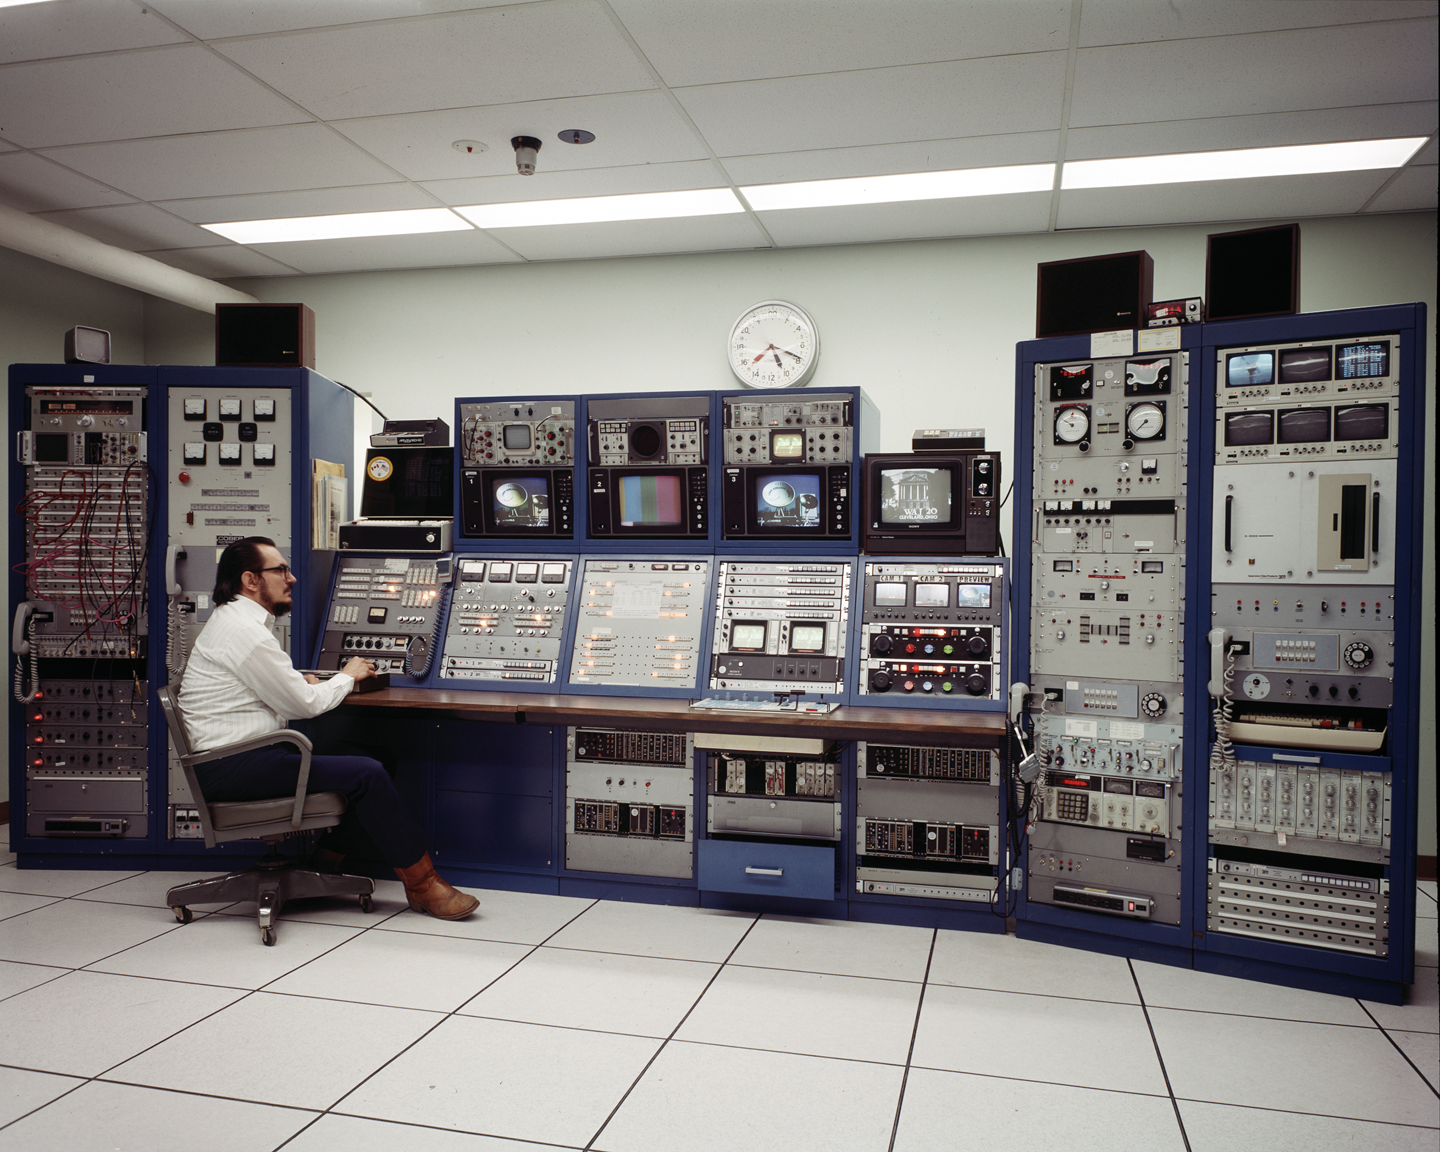 #control-panel-in-the-nasa